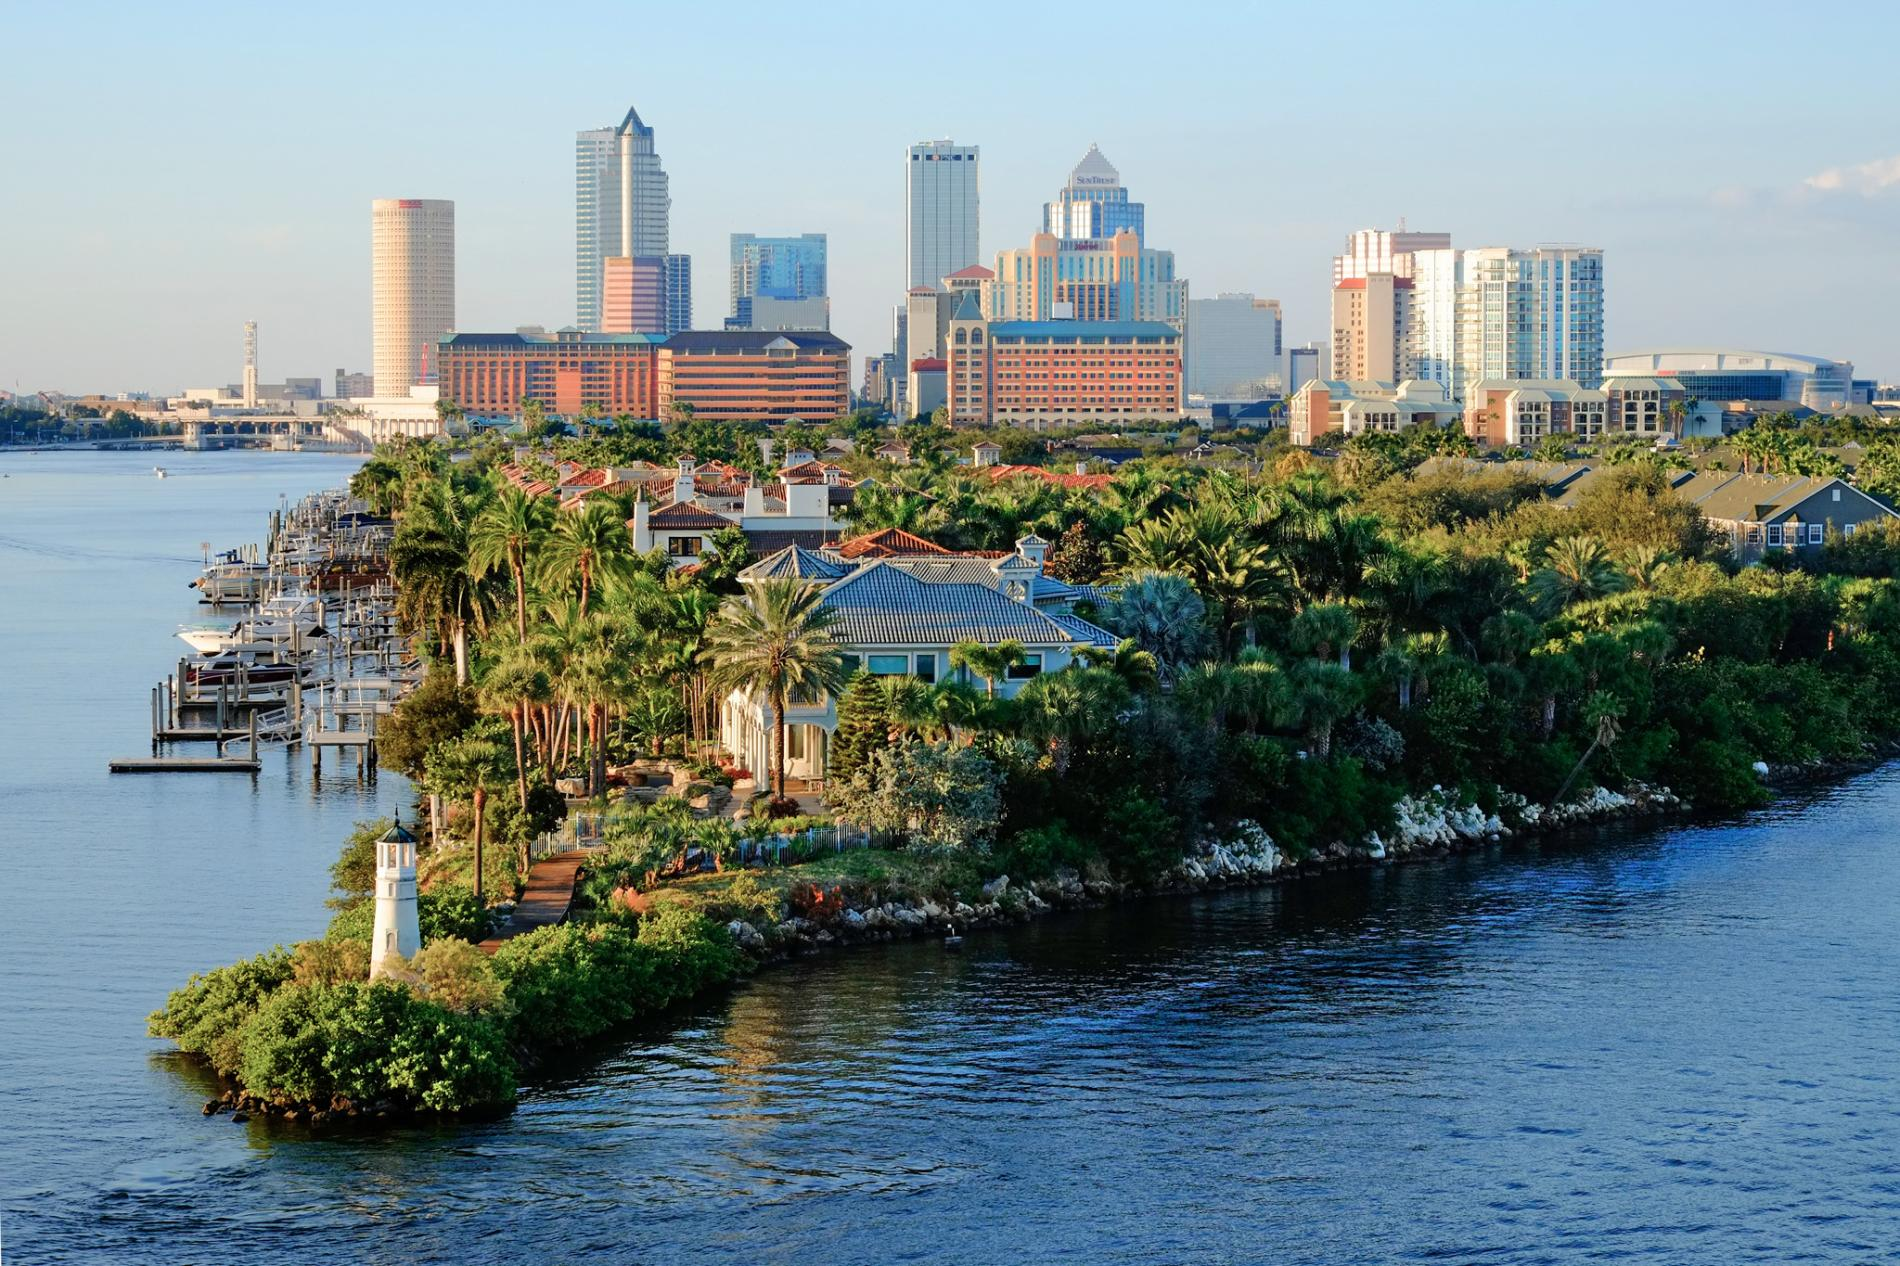 Tampa, Florida - Great weather, beaches, and a list of things to do and see. Not sure what to do while there? Don't worry, we can help. We can work around your budget while still giving you your best vacation!